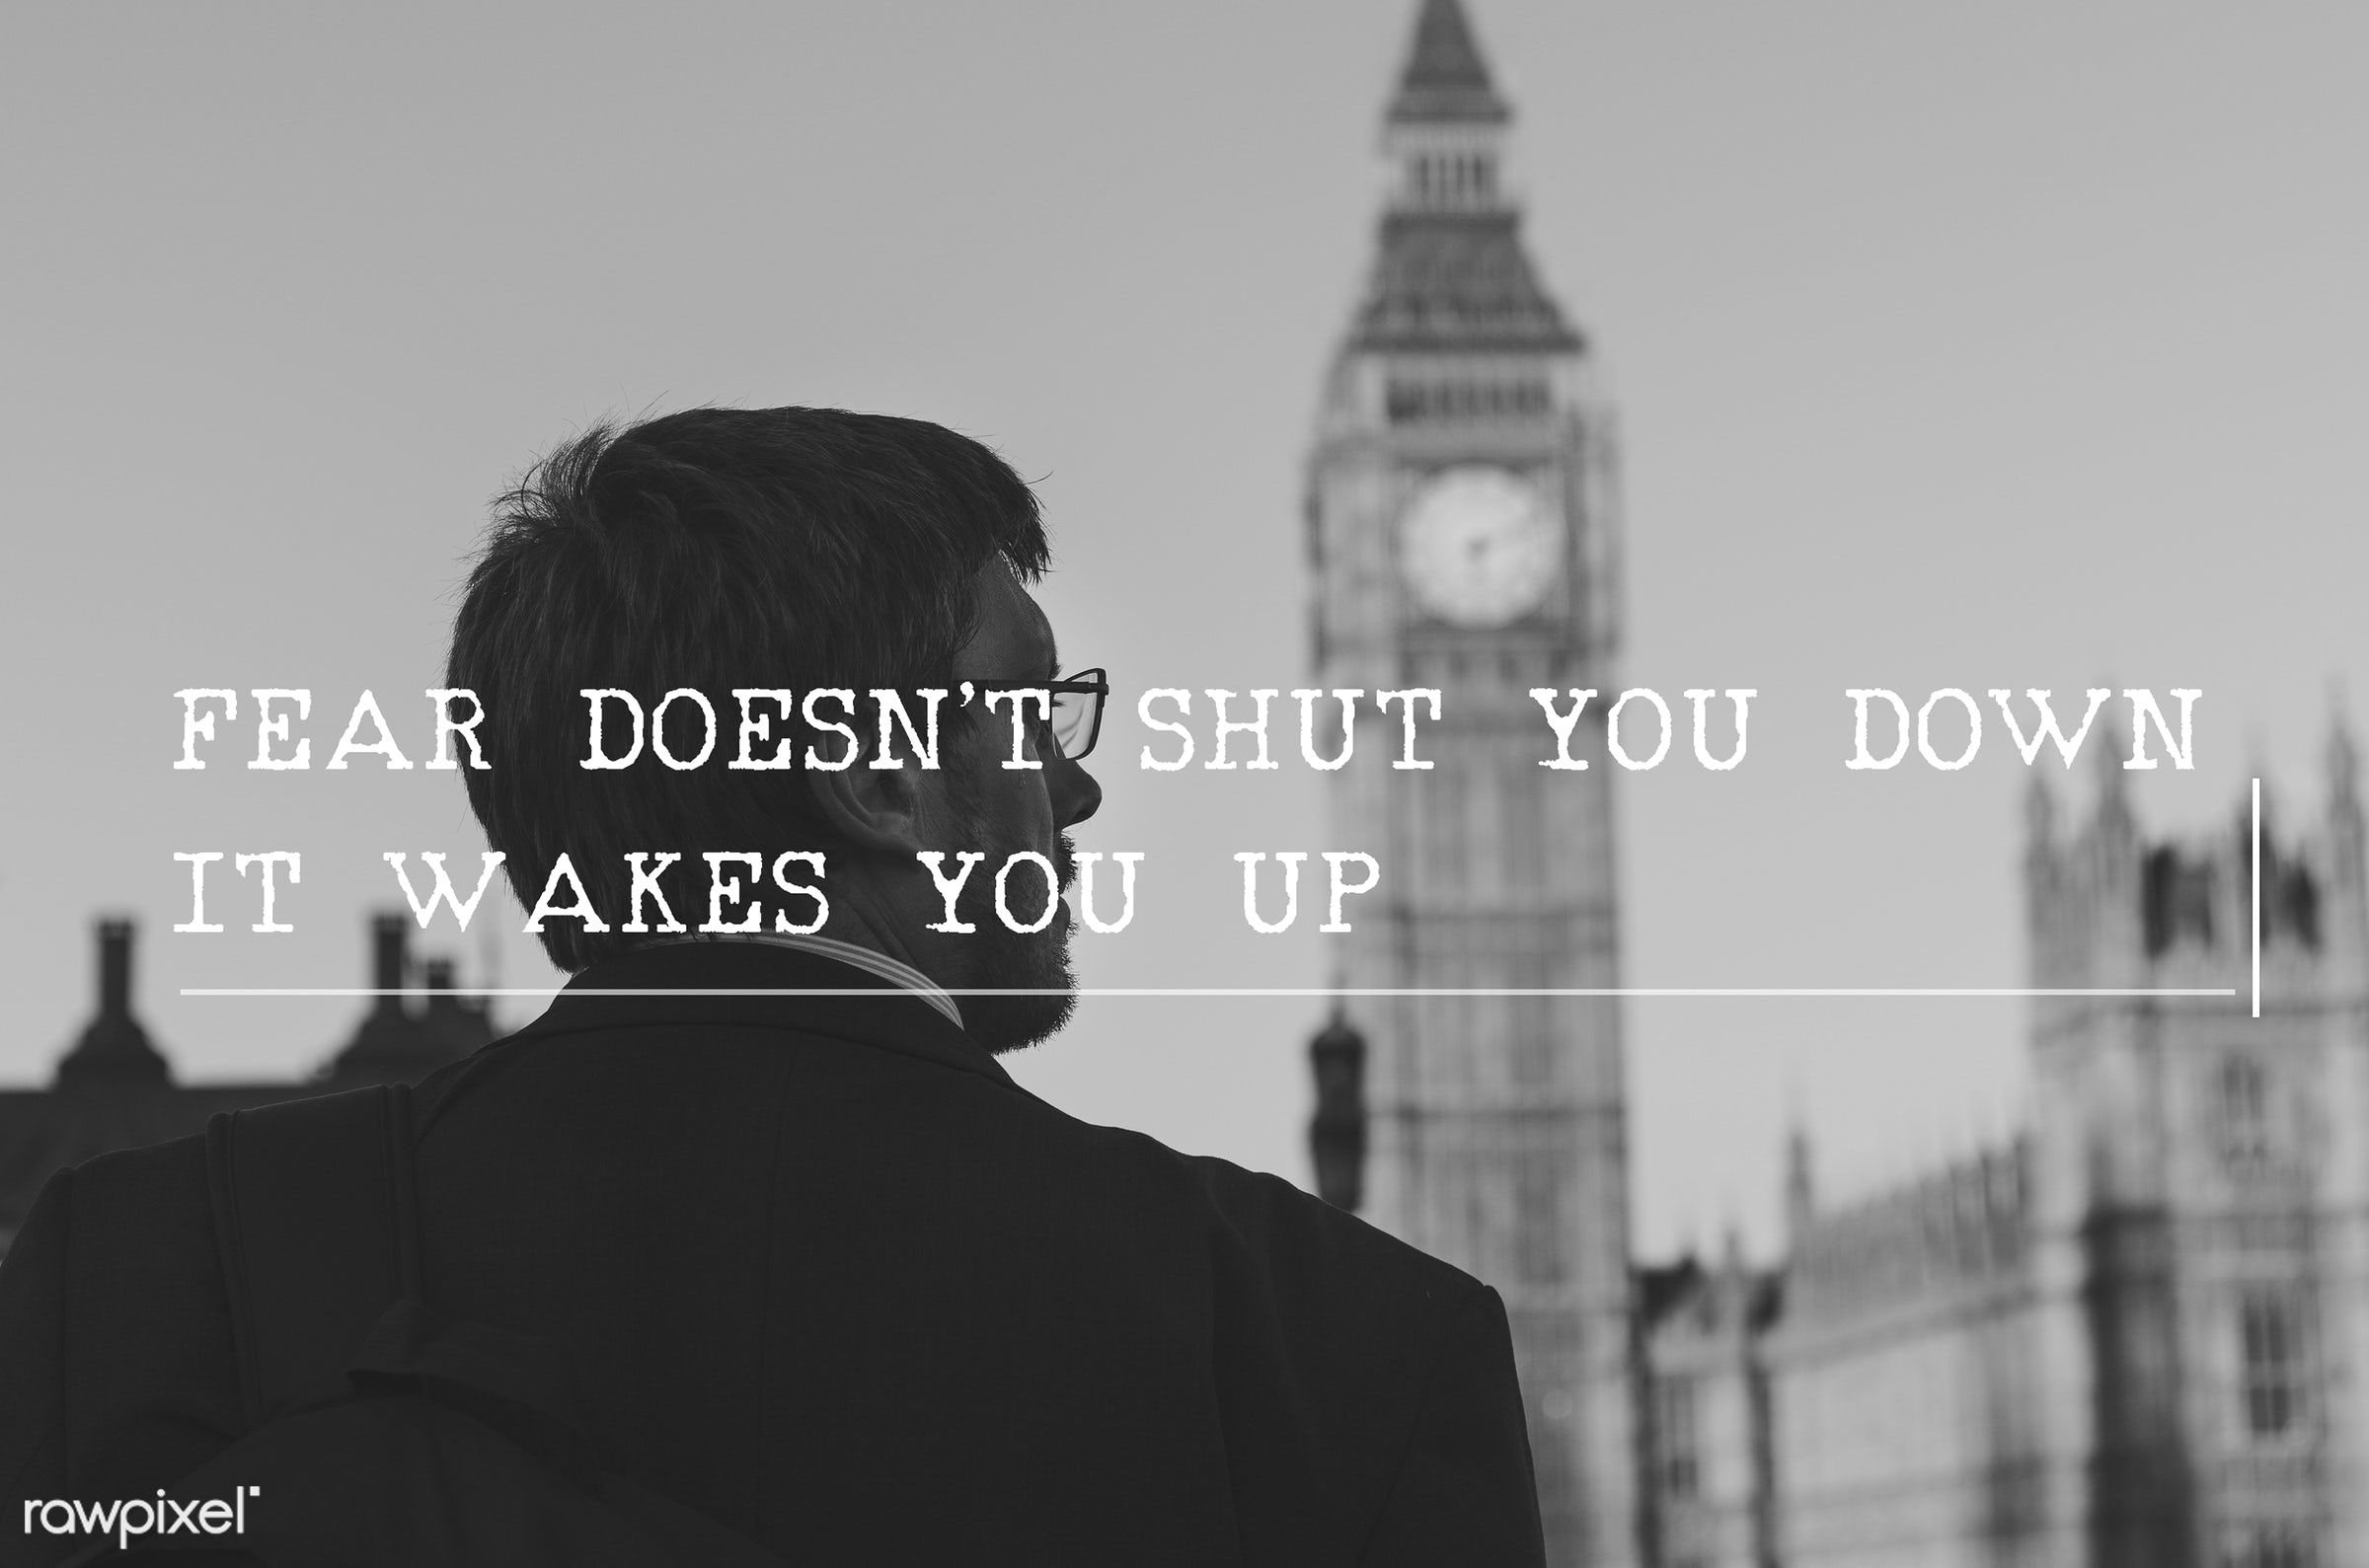 uk, be the change, big ben, britain, building, business, businessmen, chance, clock, don't stop until you're proud, don't...